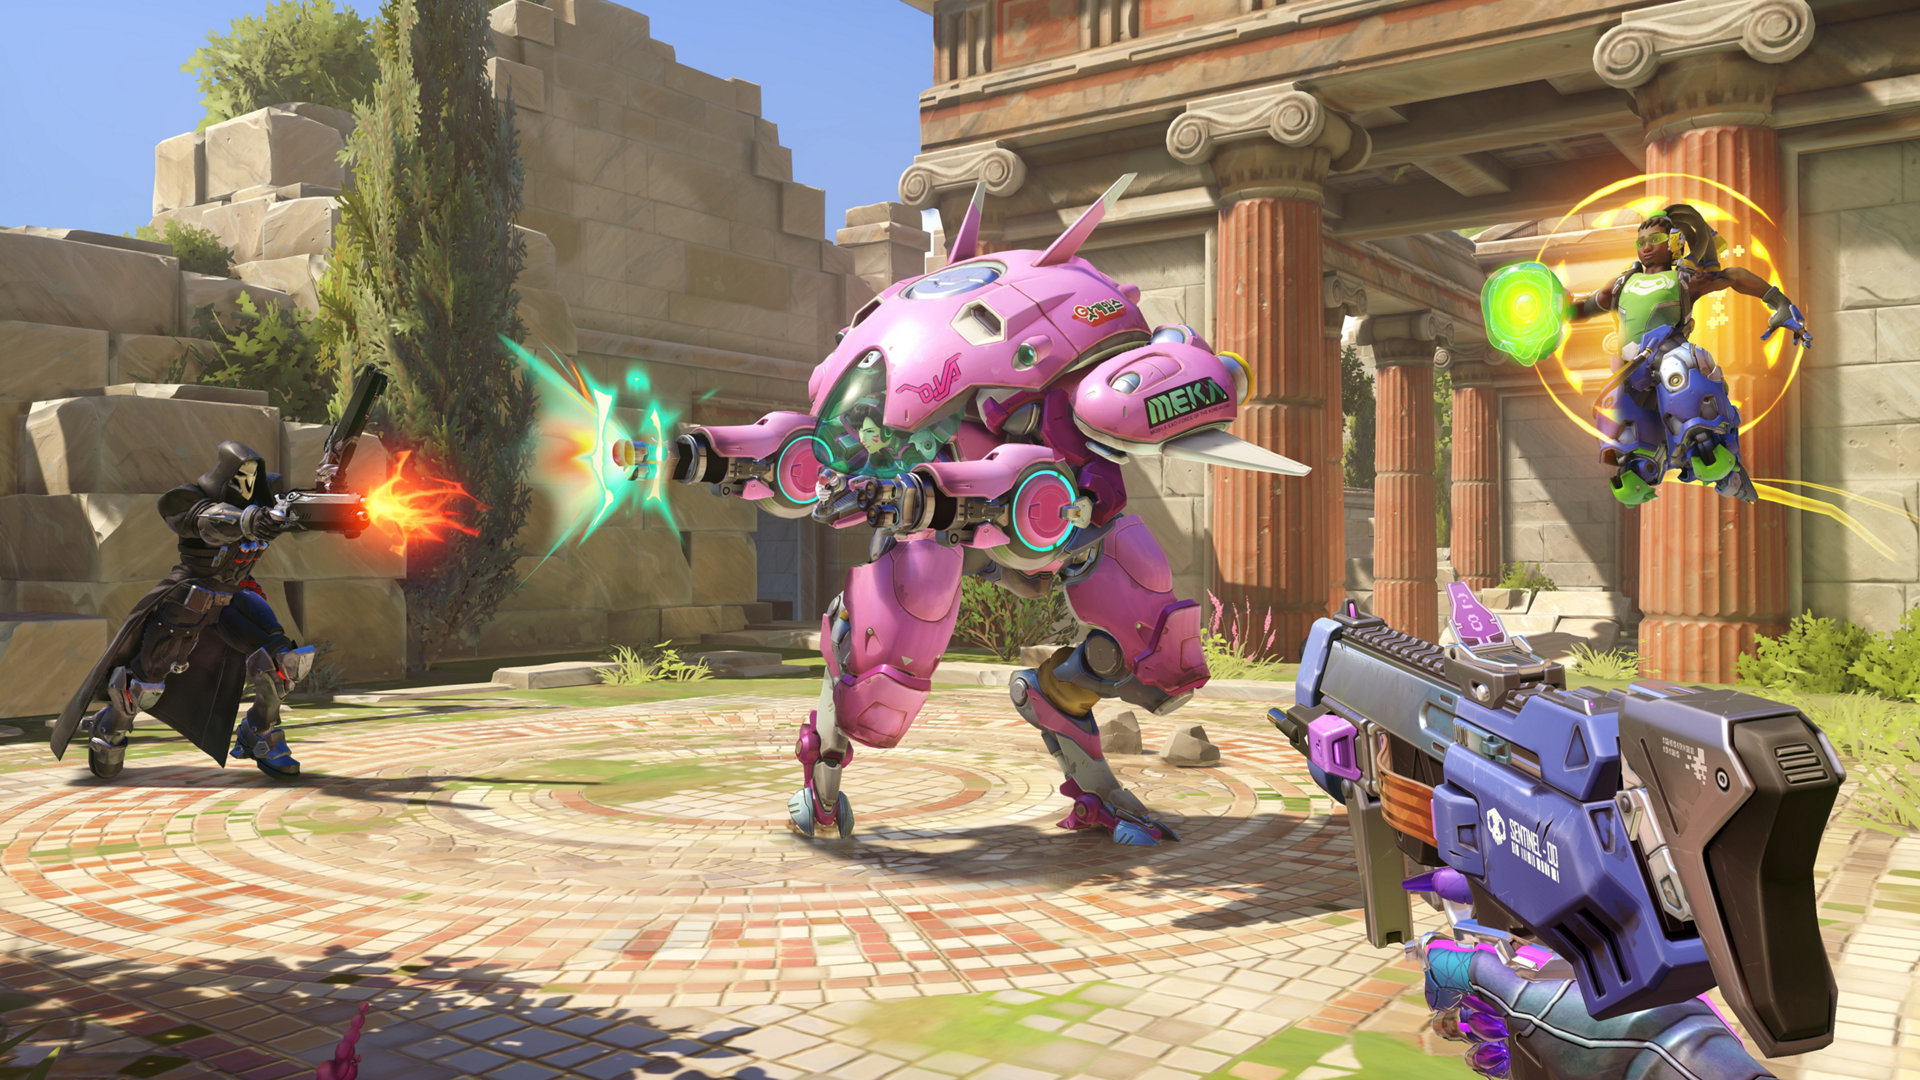 Overwatch Replay System Finally Lets You Watch Past Matches